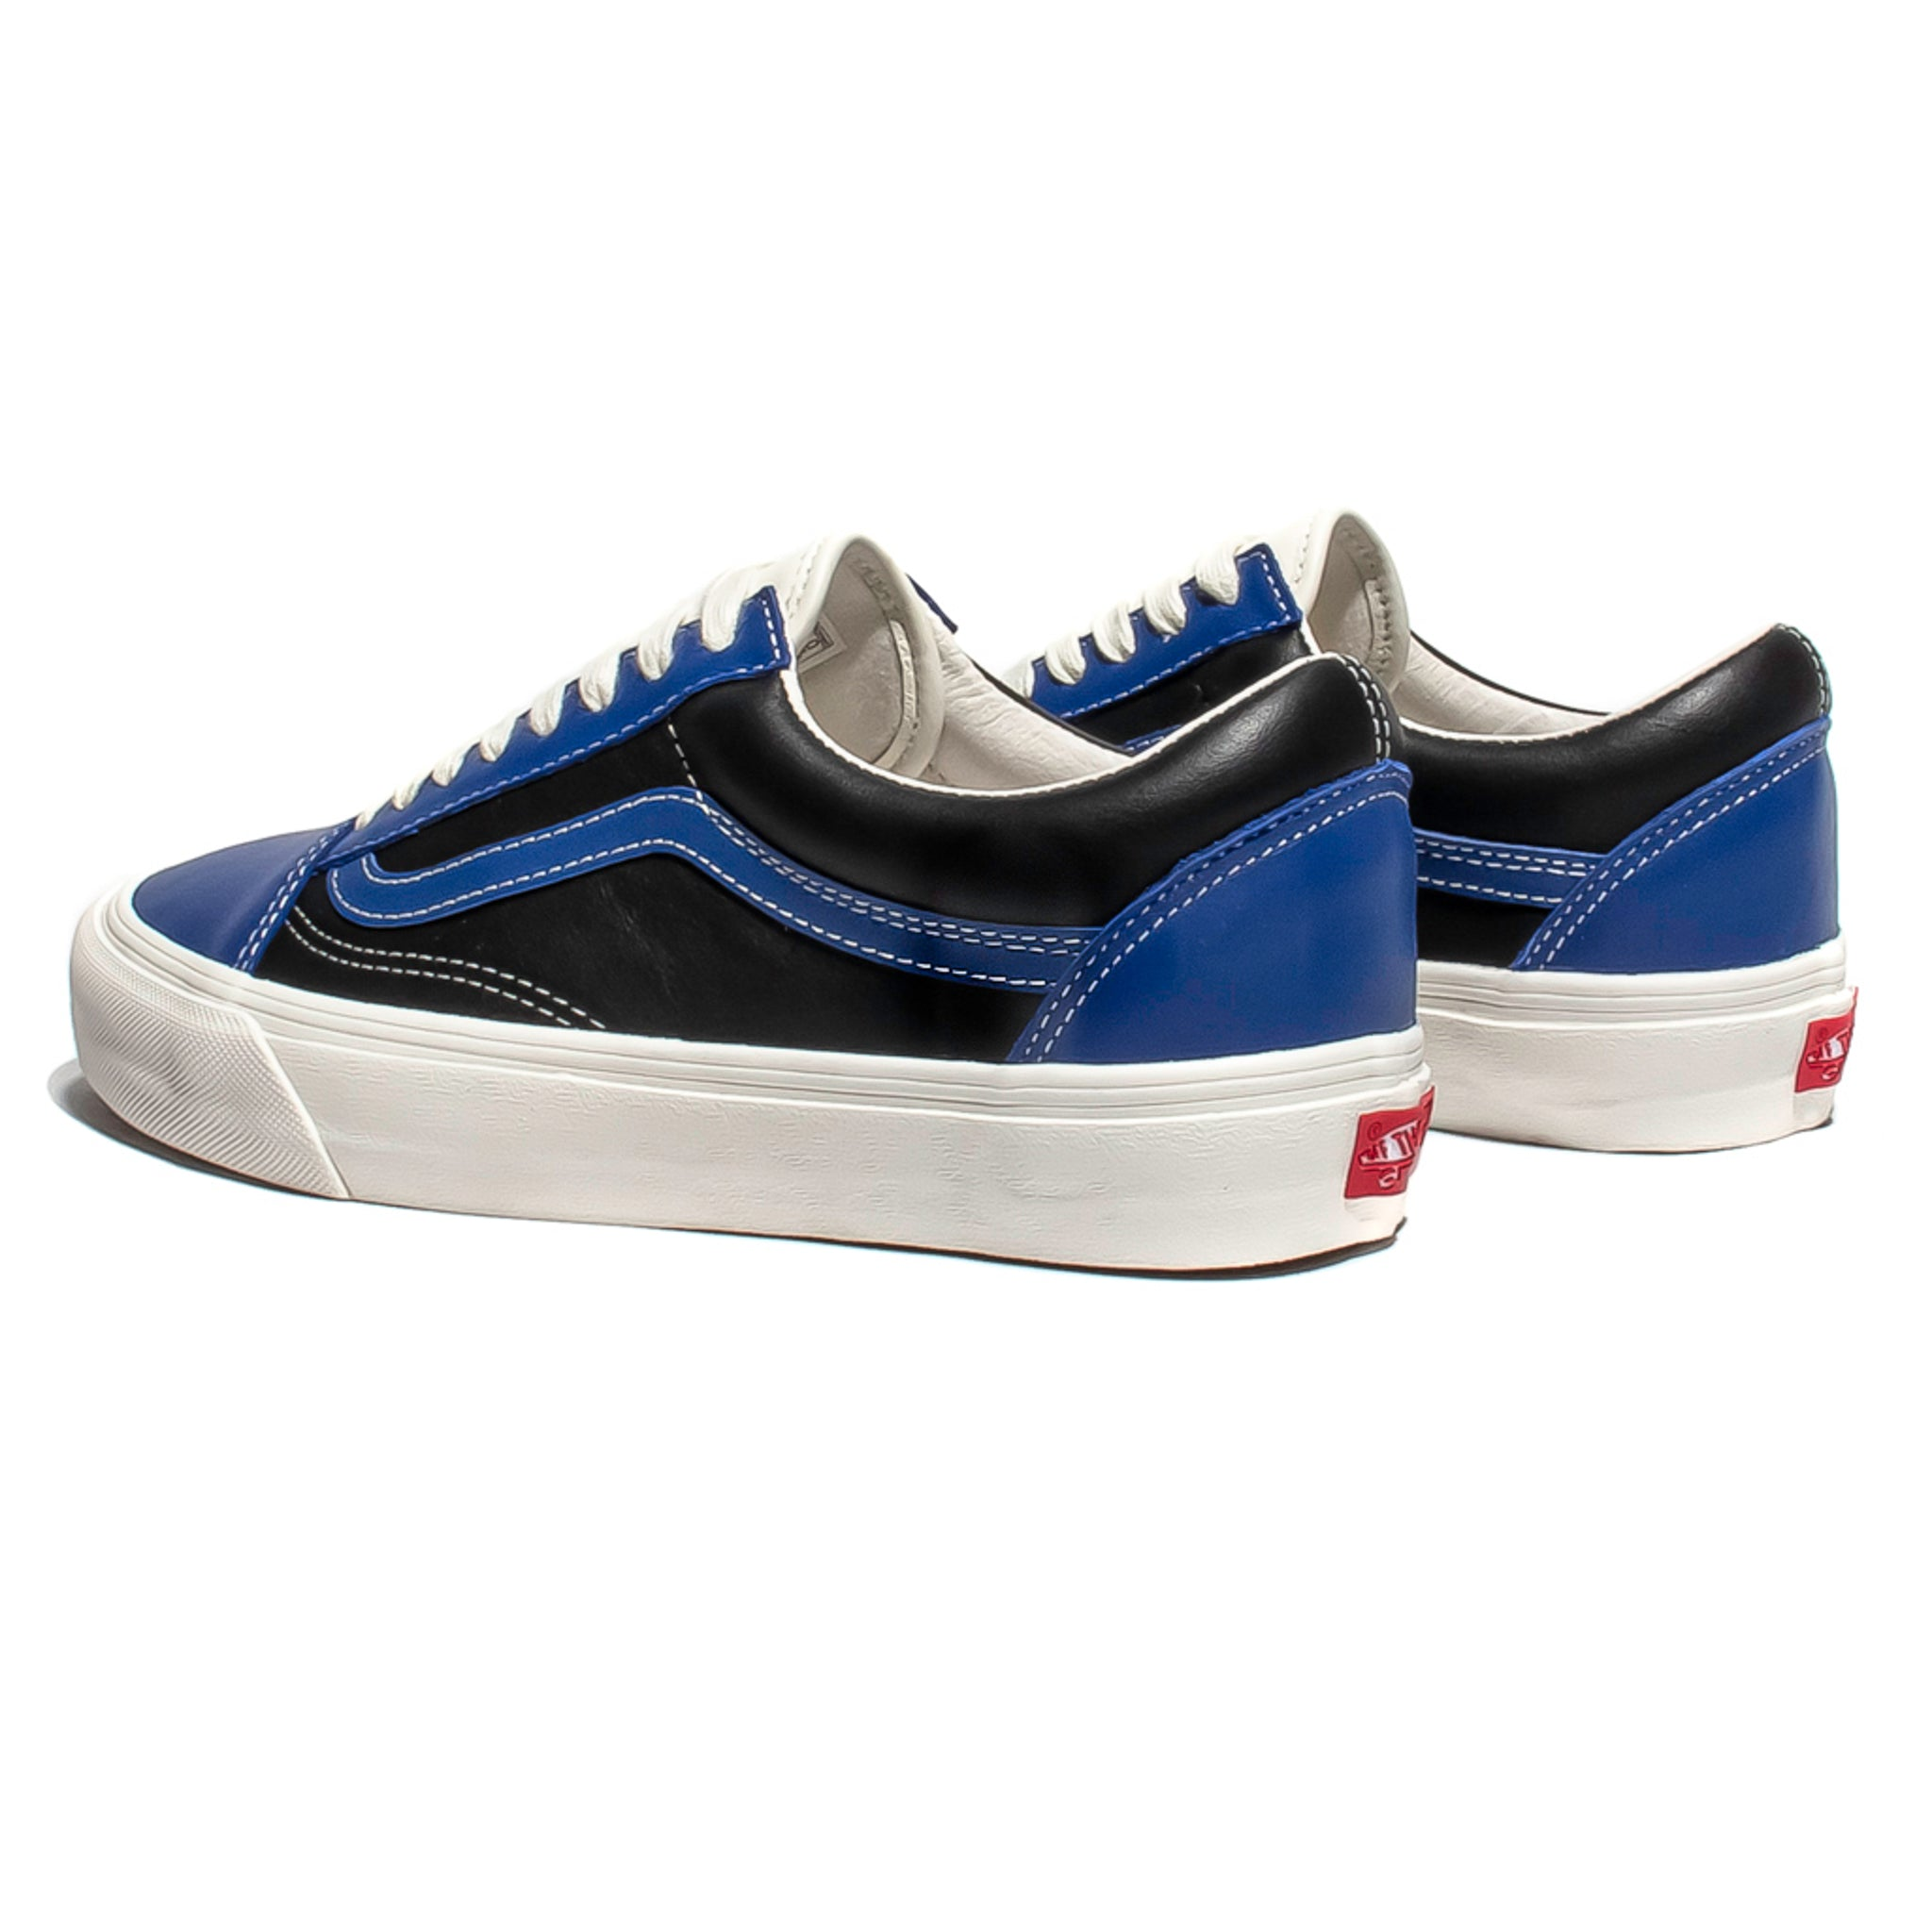 Vans Vault Old Skool VLT LX True Blue/Marshmallow